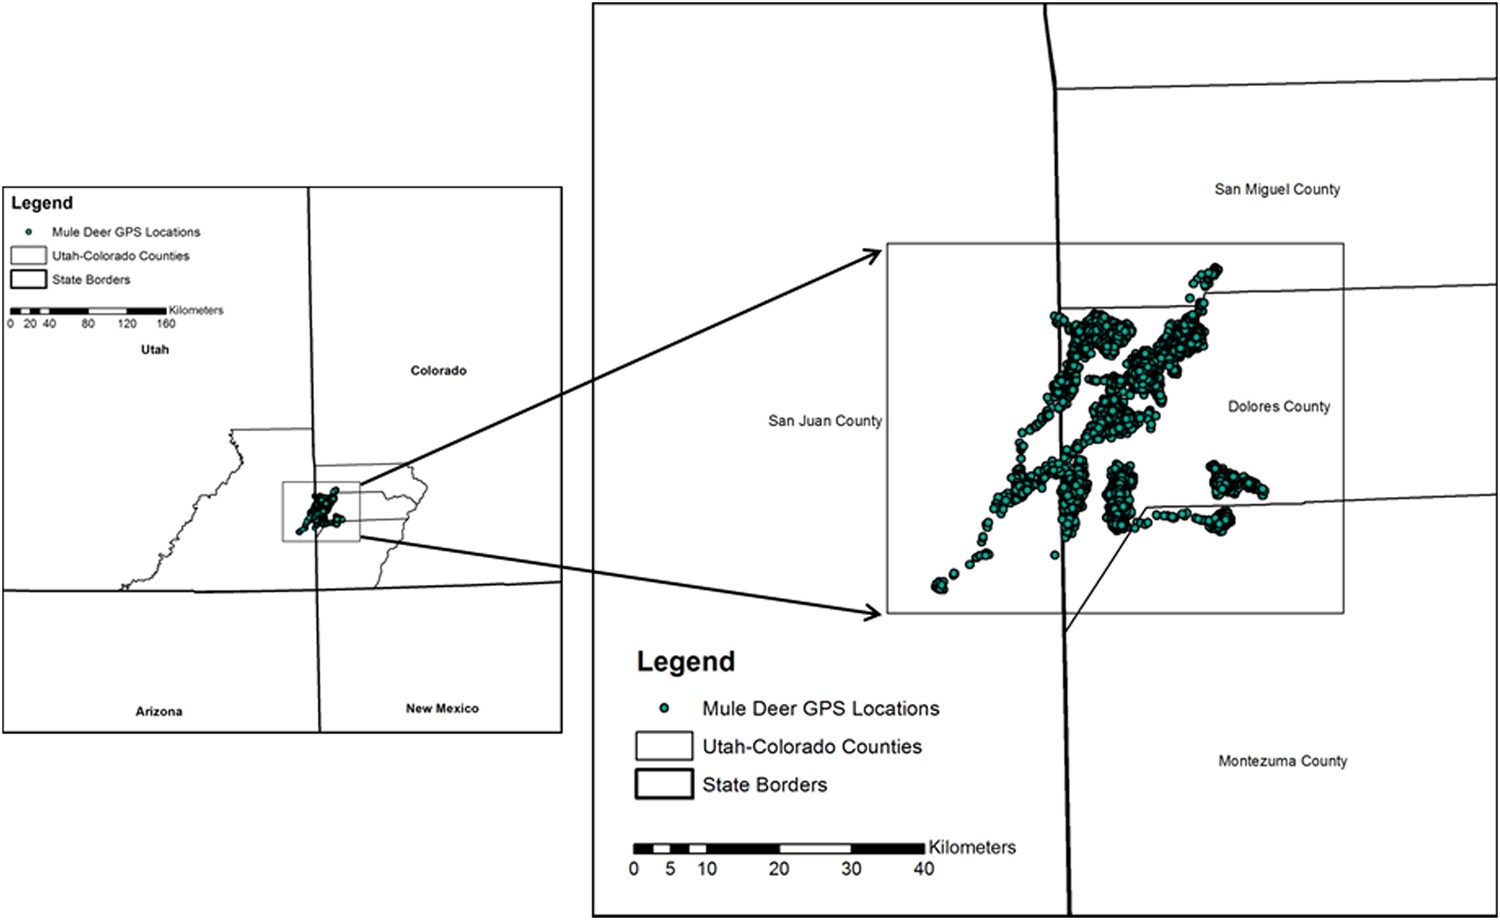 University Of Arizona Keating Building Map.Influence Of Precipitation And Crop Germination On Resource